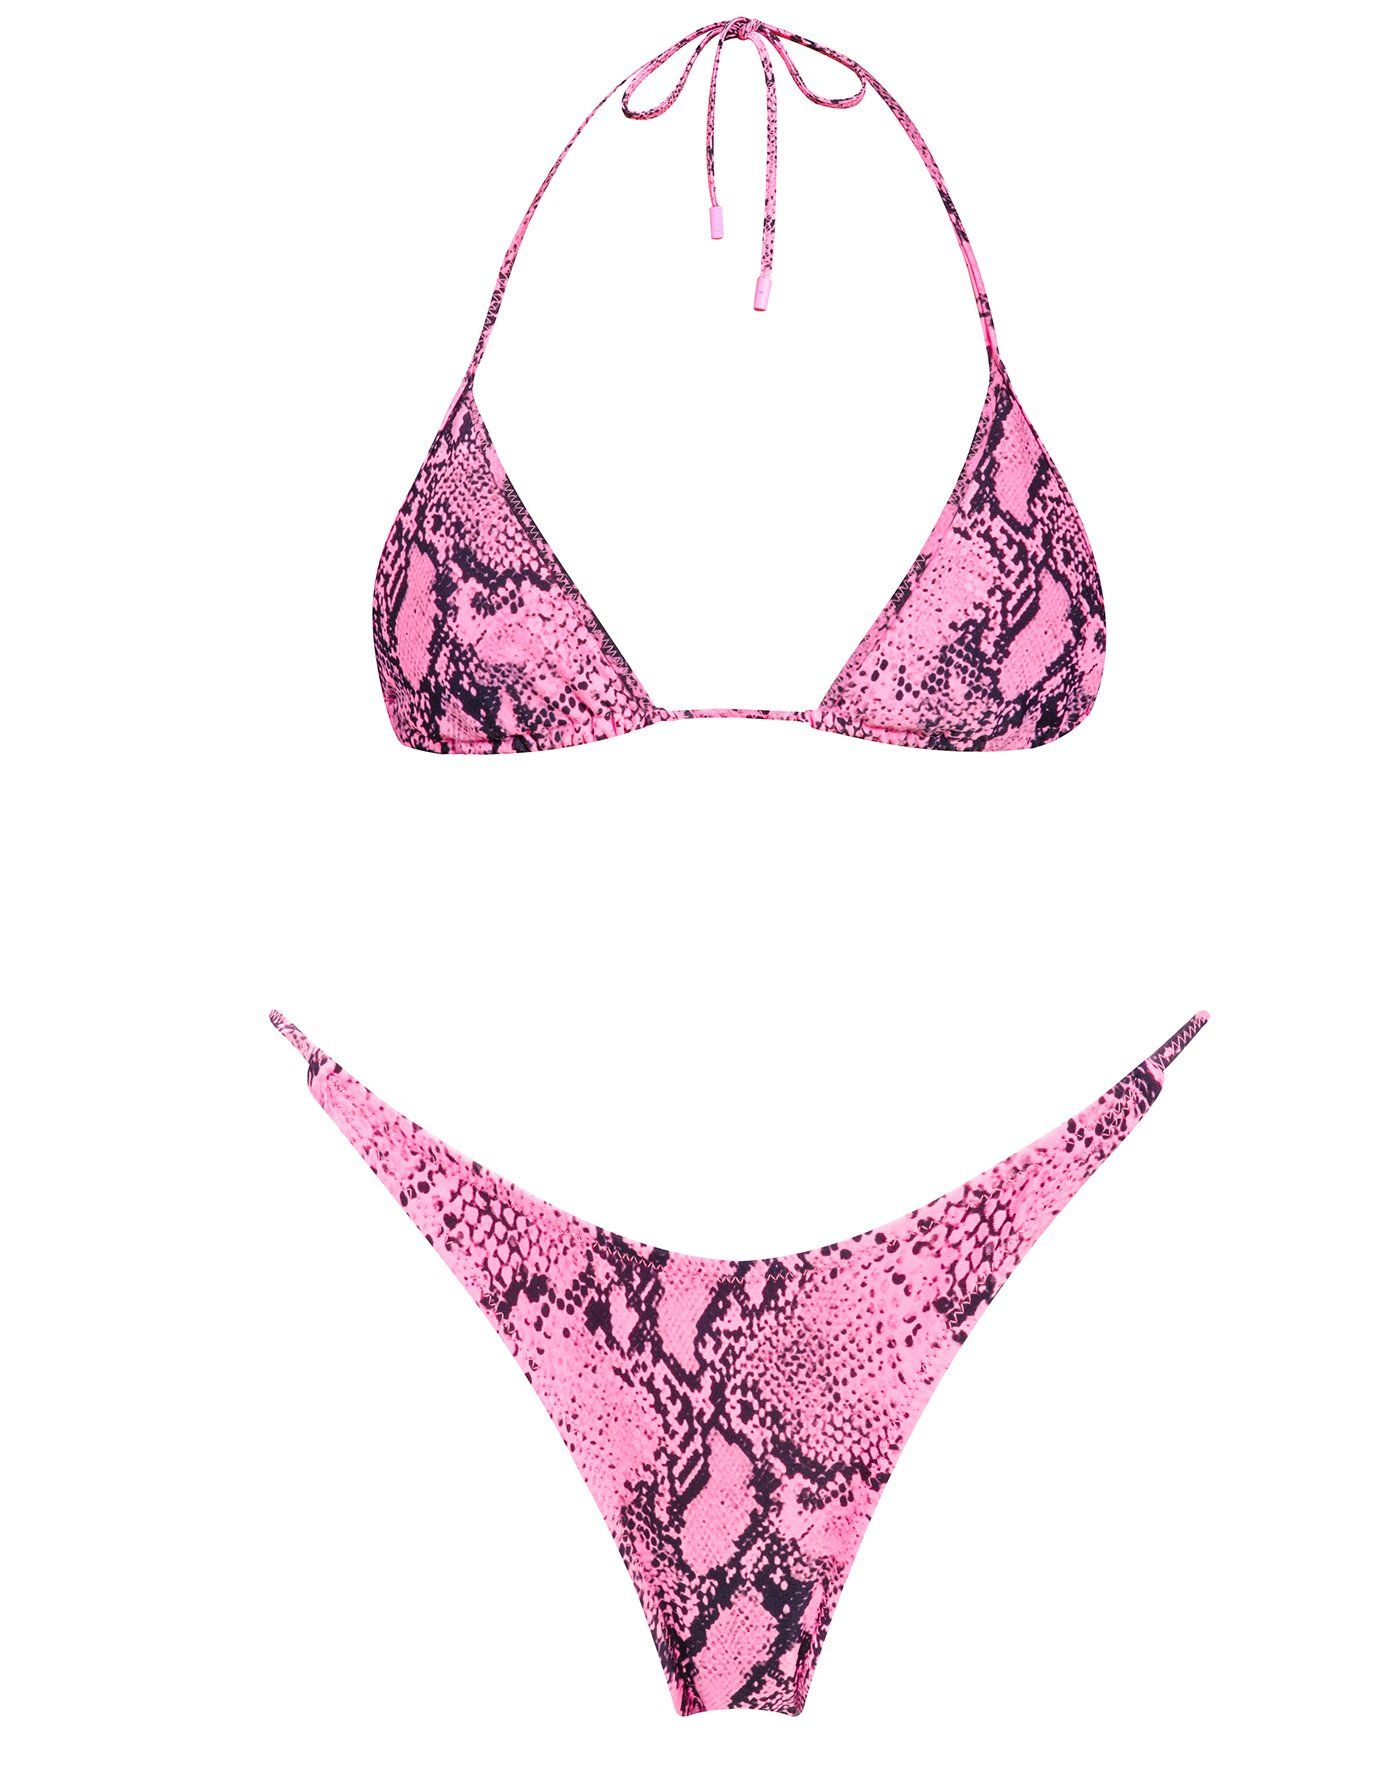 f40037f33e Hot pink snake print nylon spandex neck tie bikini. Fully adjustable  triangle top with self tie fastenings and matching high waist thin strap  bottoms.